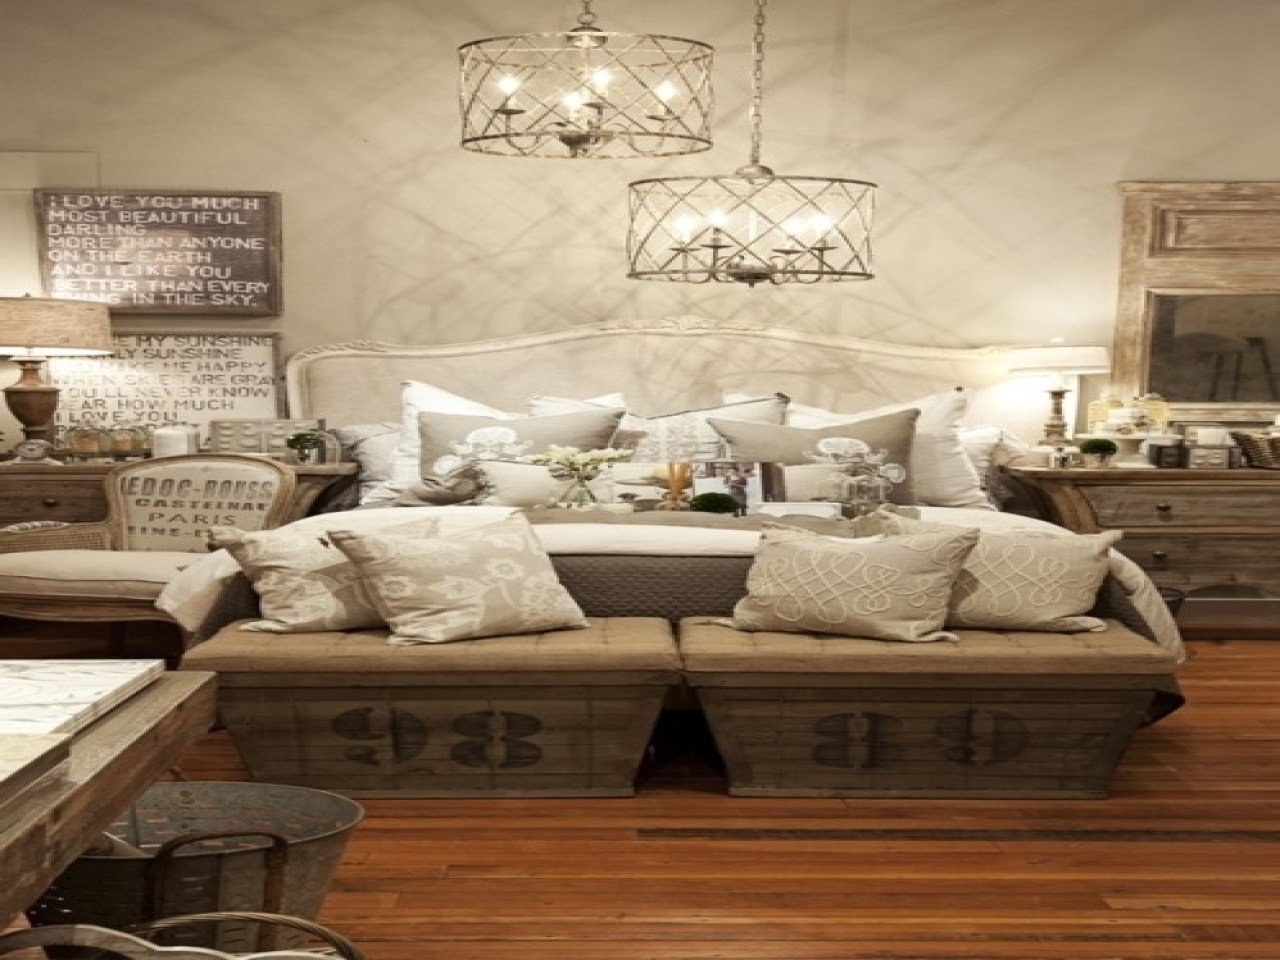 Best Rustic Chic Bedroom Ideas Rustic Chic Bedroom Decor Boho With Pictures